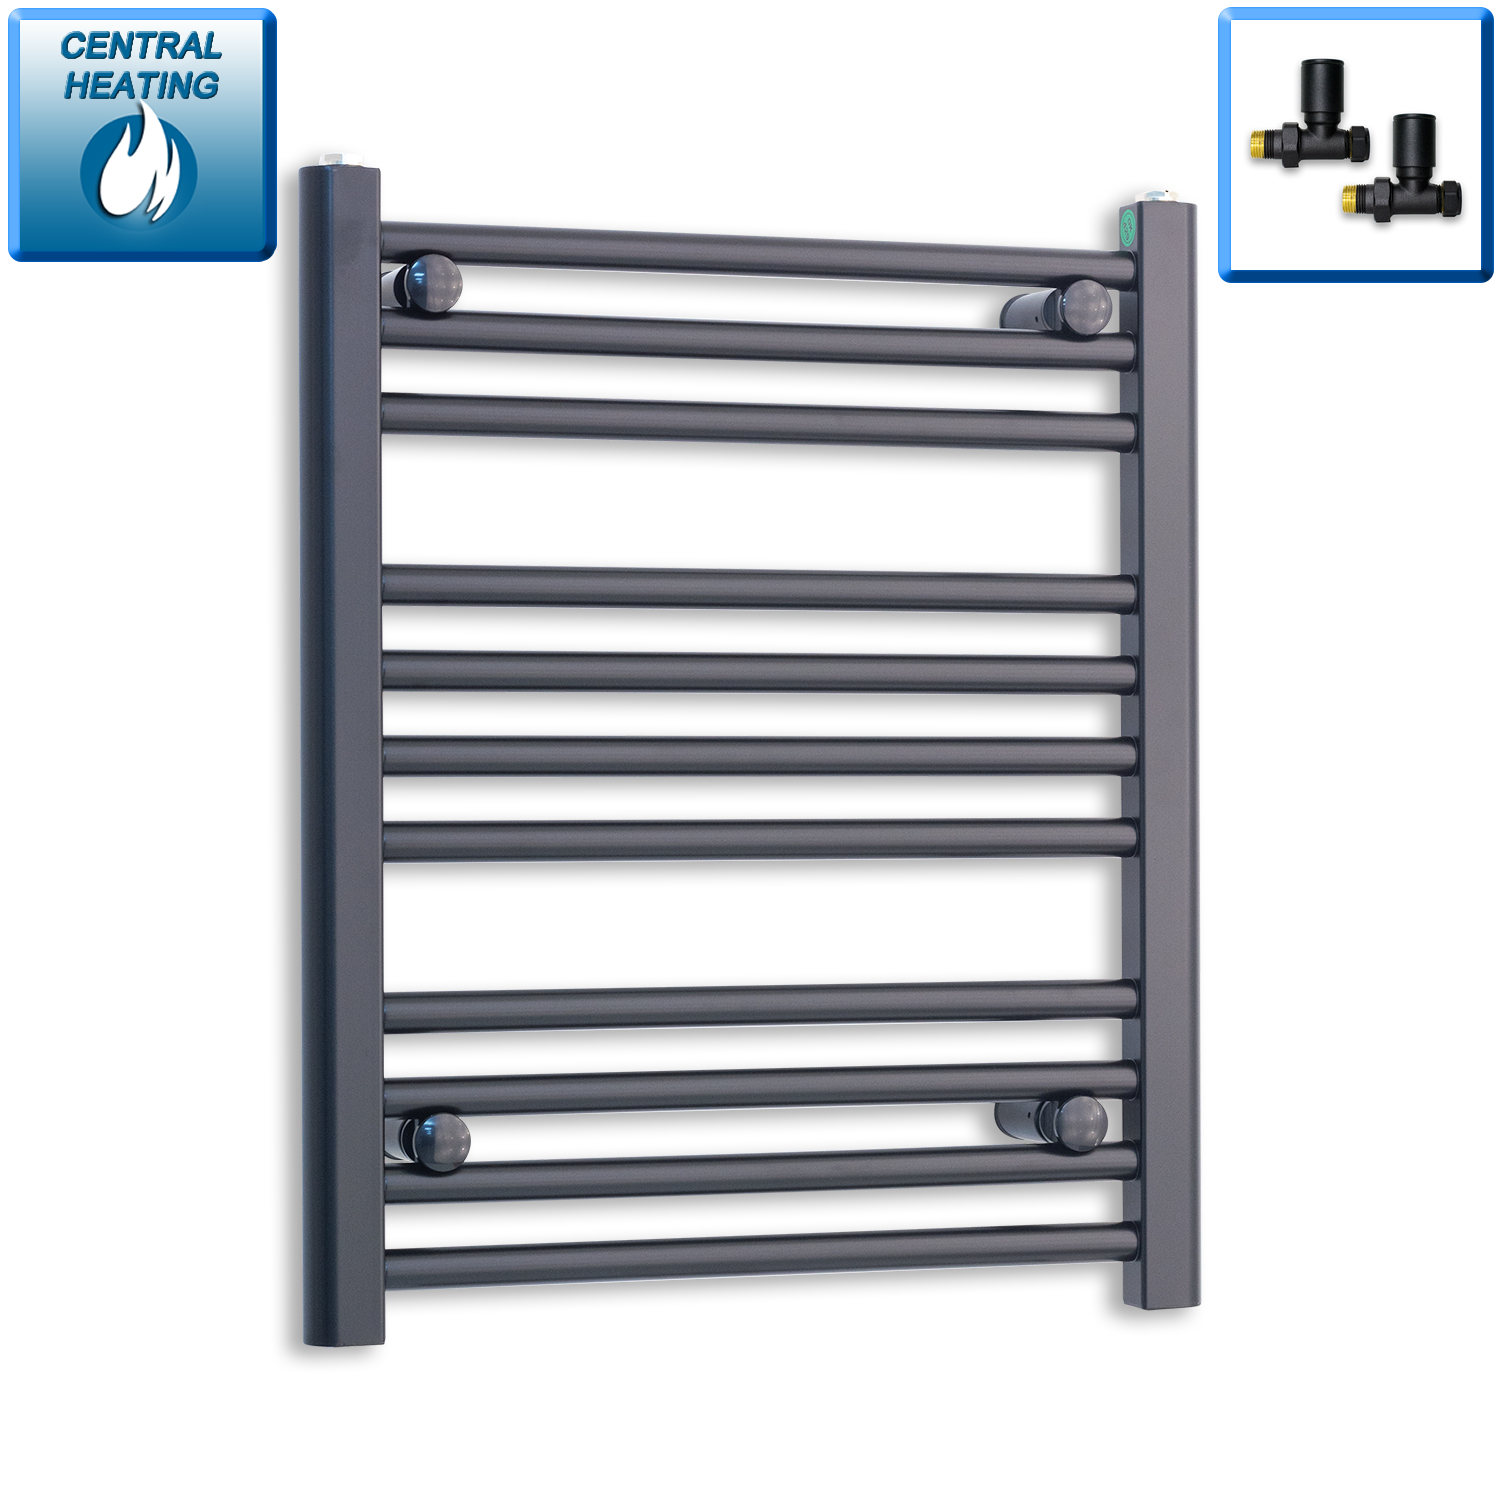 600mm Wide 600mm High Flat Black Heated Towel Rail Radiator,With Straight Valve